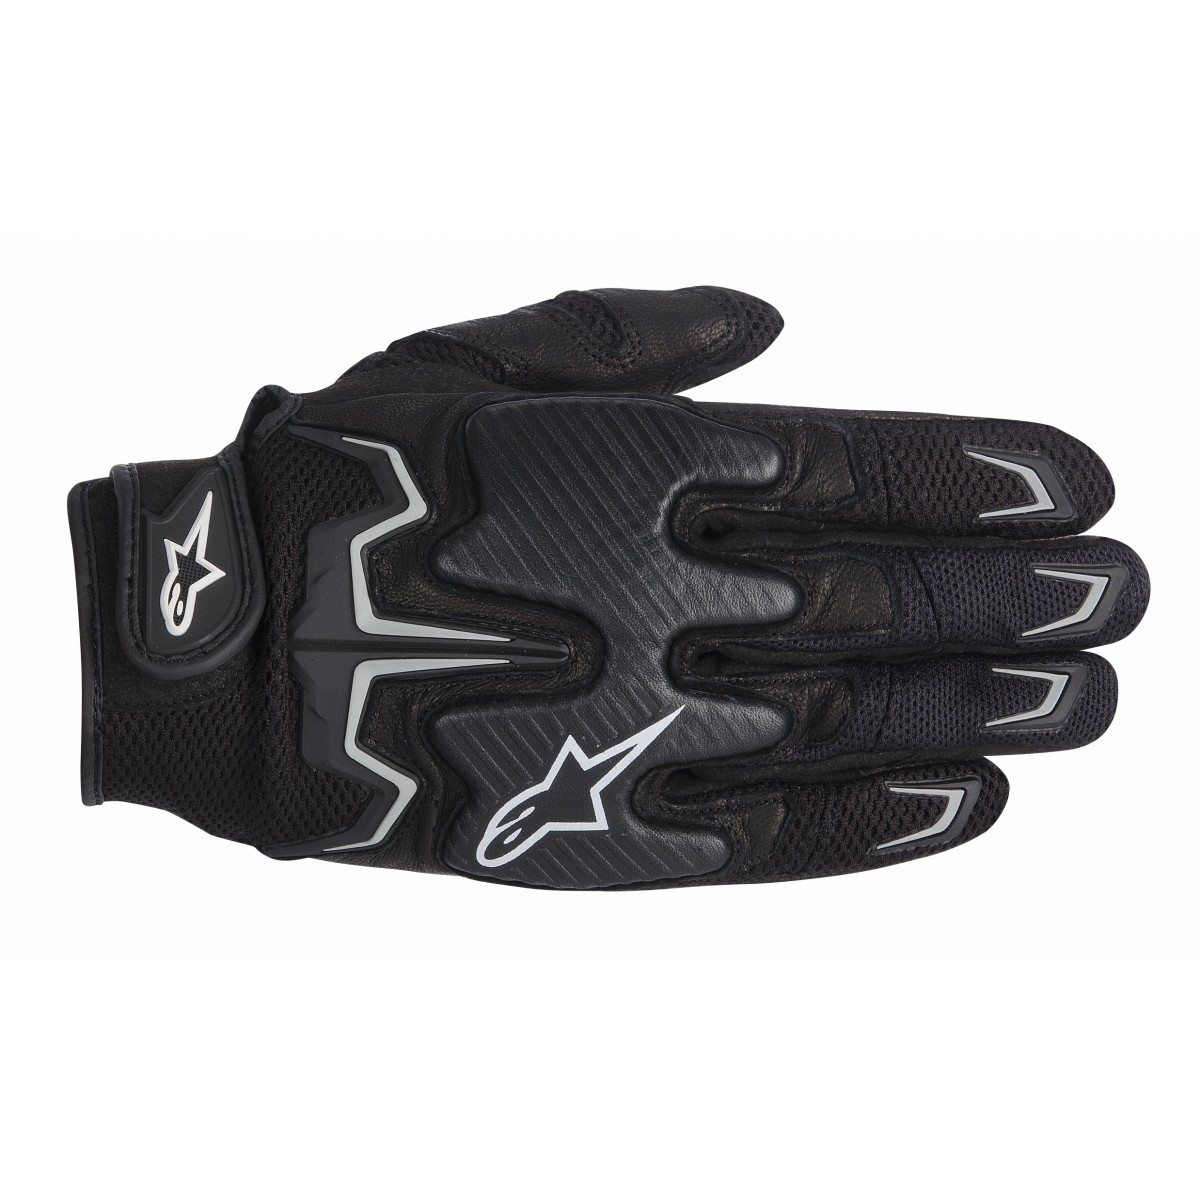 Luva Alpinestars Fighter Air Black  - Planet Bike Shop Moto Acessórios